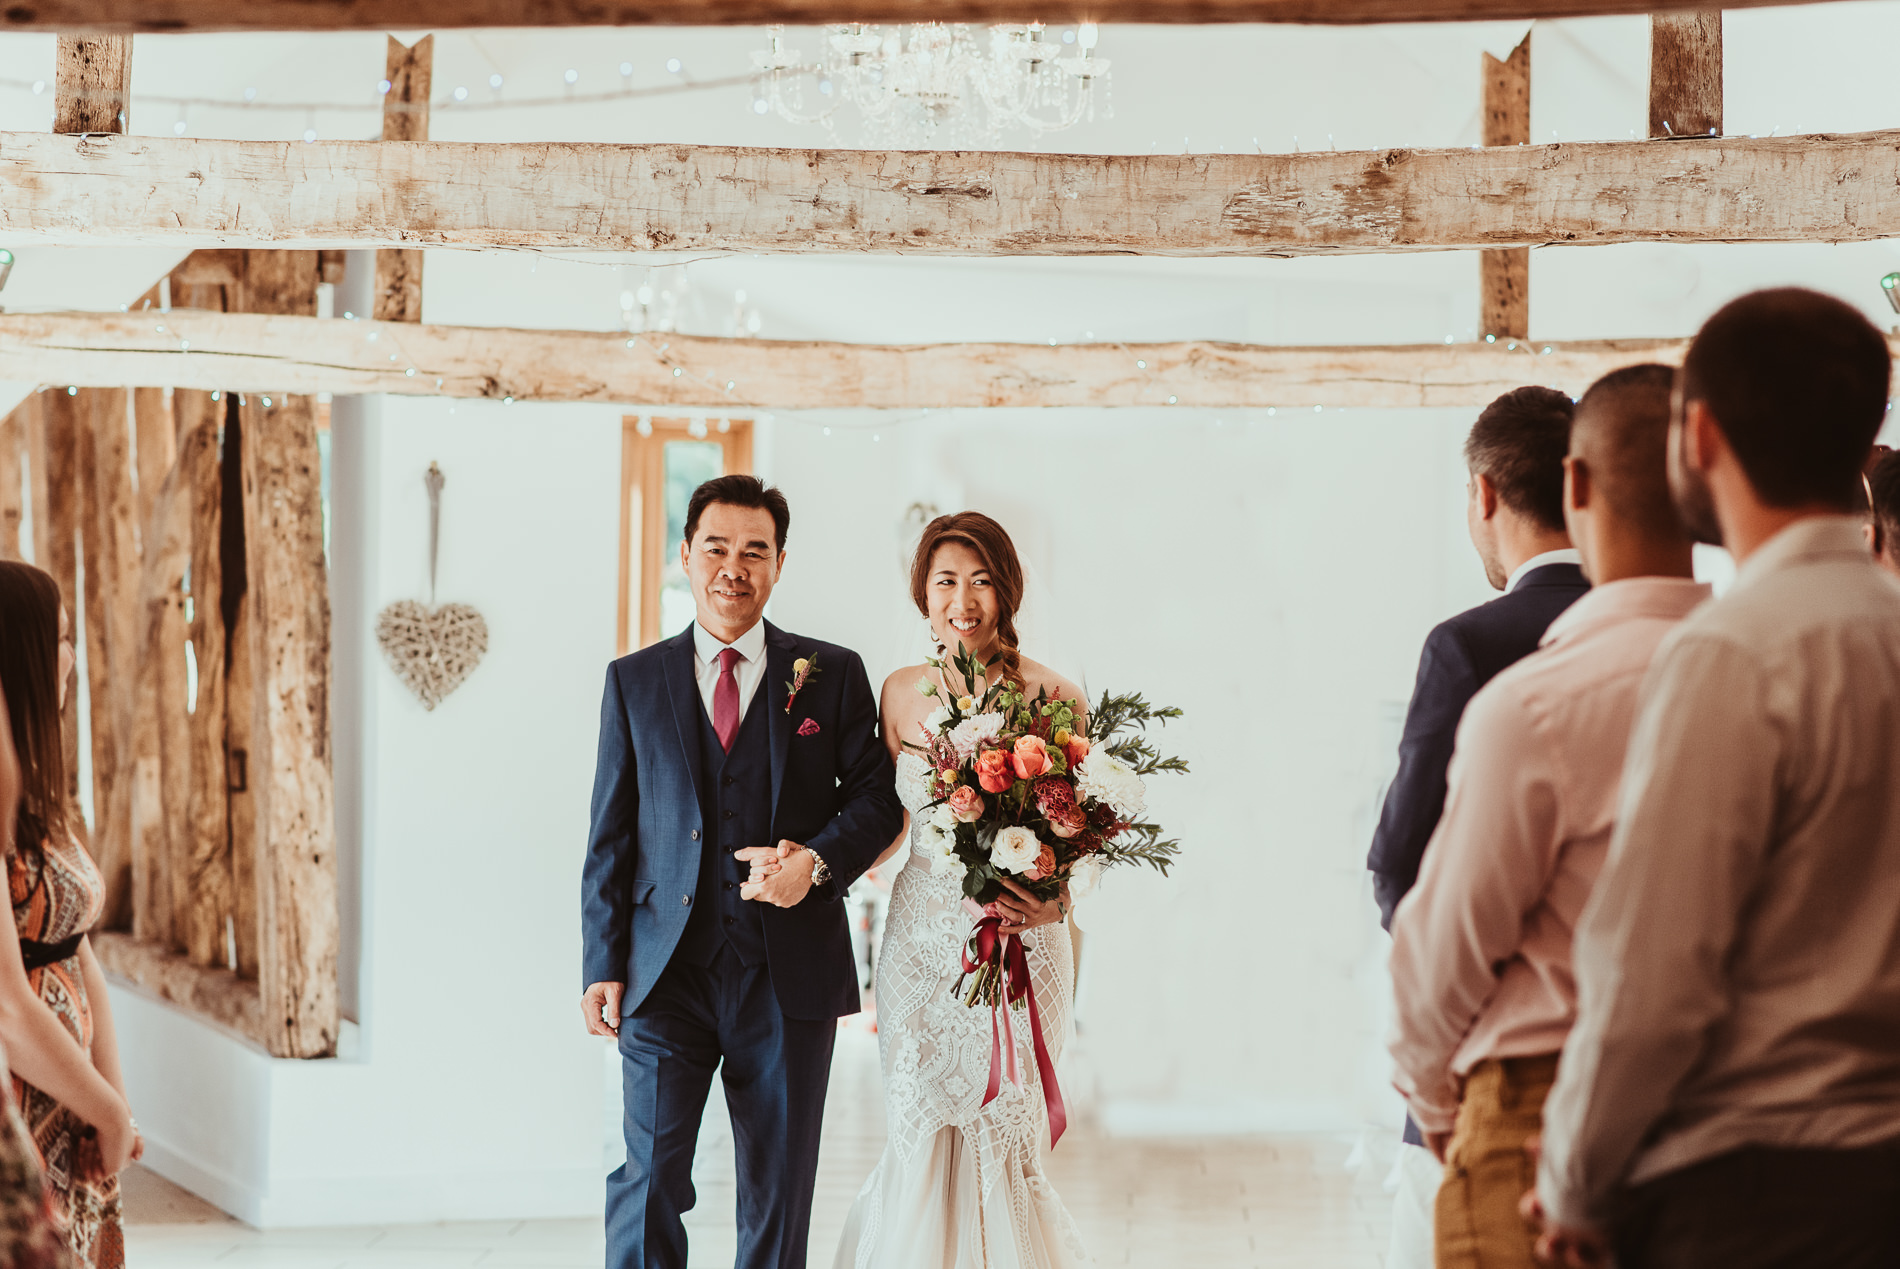 Father of the bride walking bride down the aisle at White Dove Barns